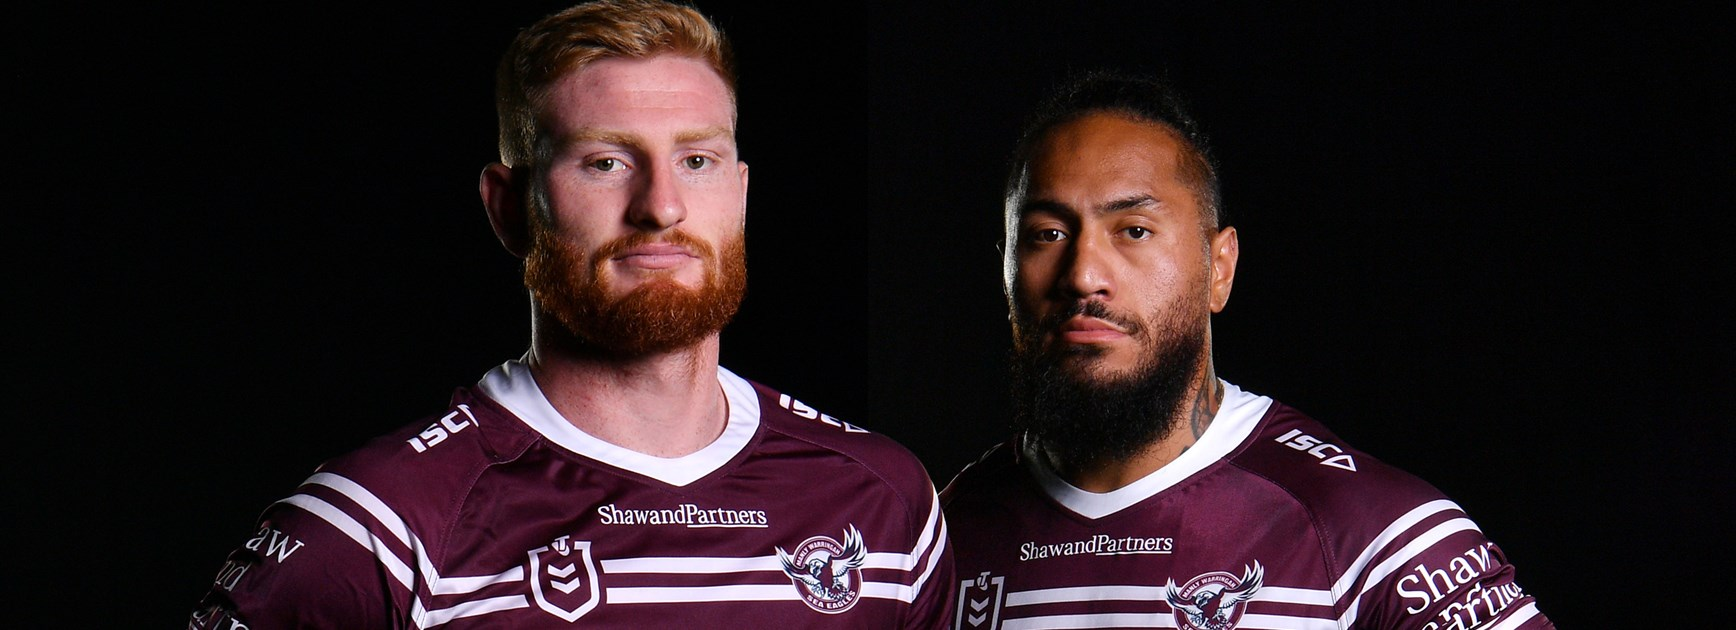 Manly's new left edge Taufua and Parker the odd couple